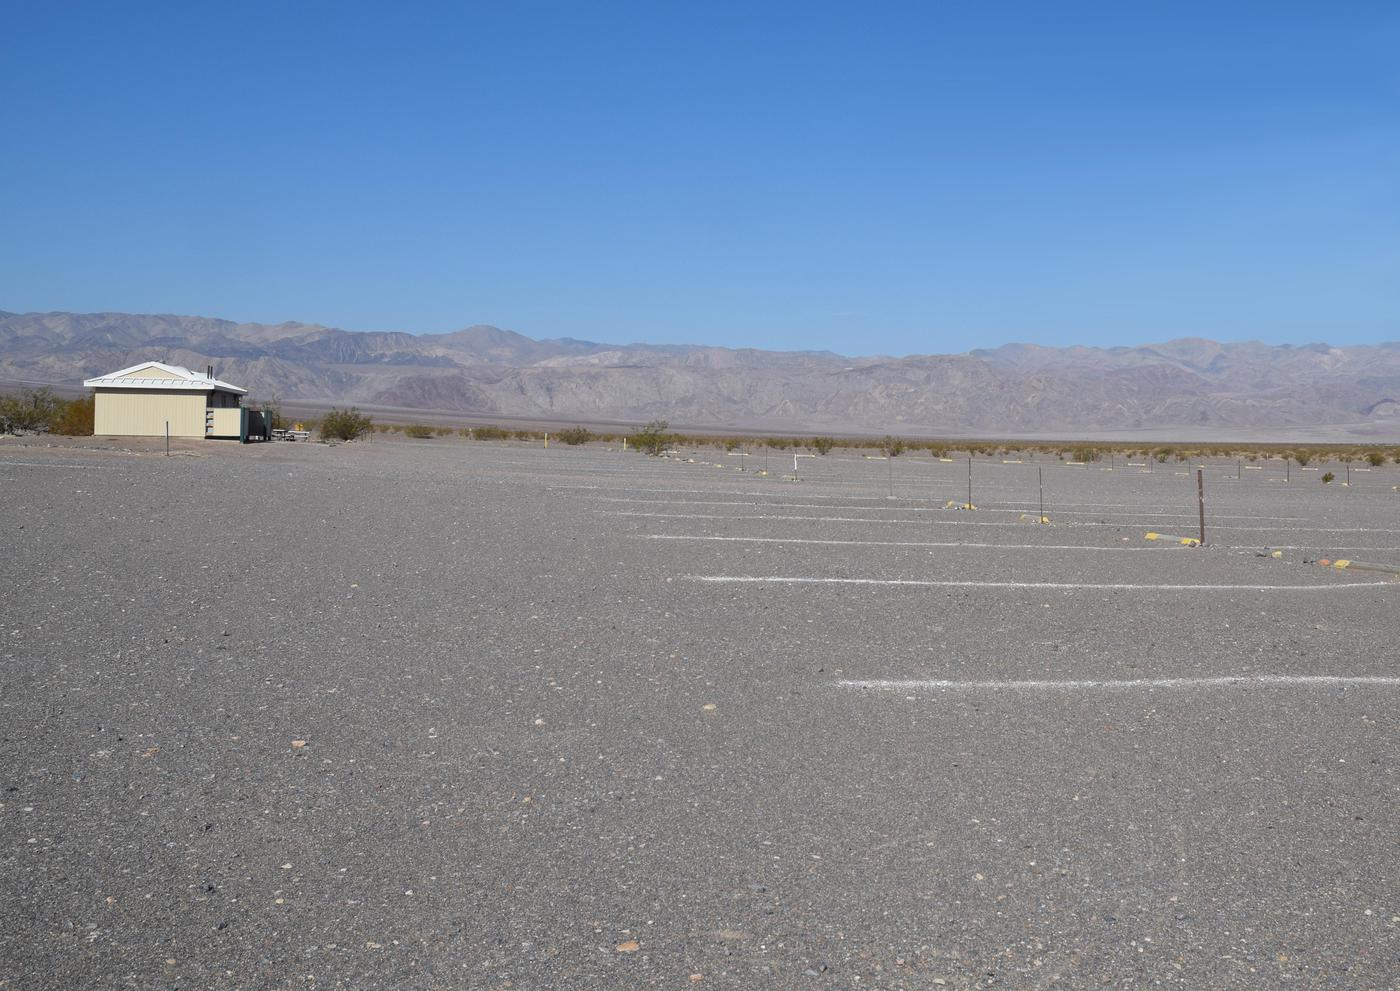 Stovepipe Wells CampgroundThe Stovepipe Wells Campground is in an open area with views of the surrounding mountains.